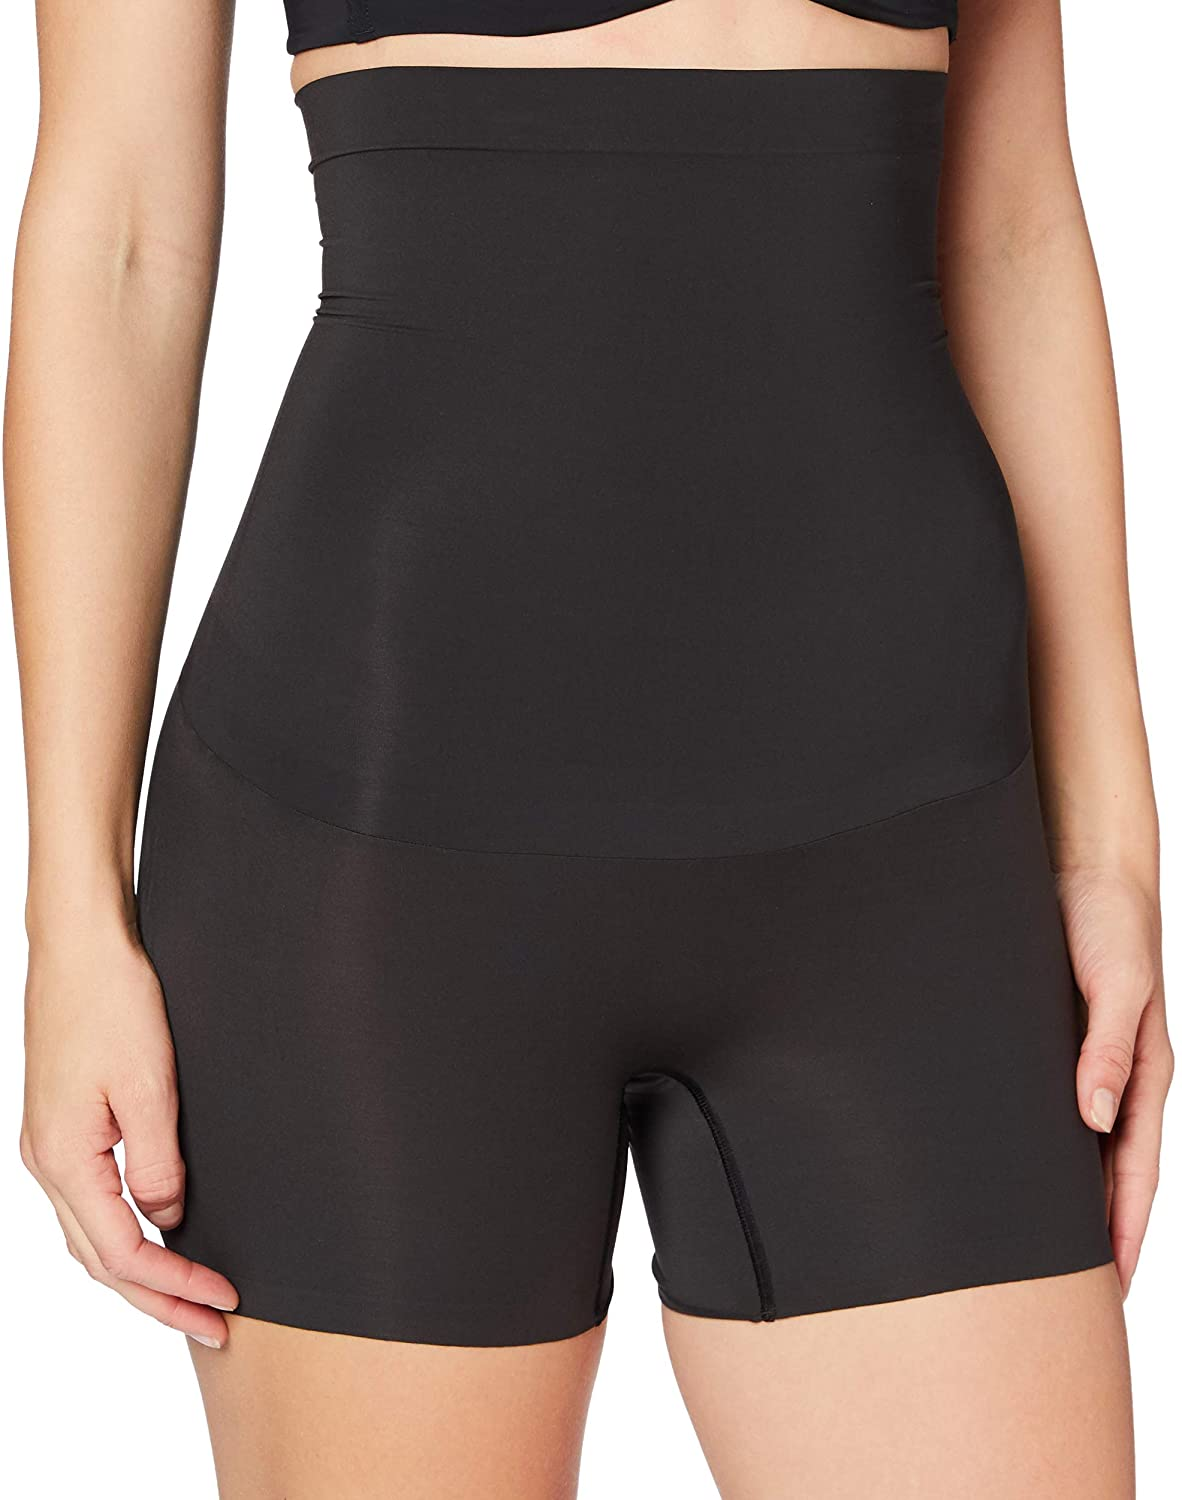 SPANX Womens Shape My Day High-Waisted Girl Short - SMALL